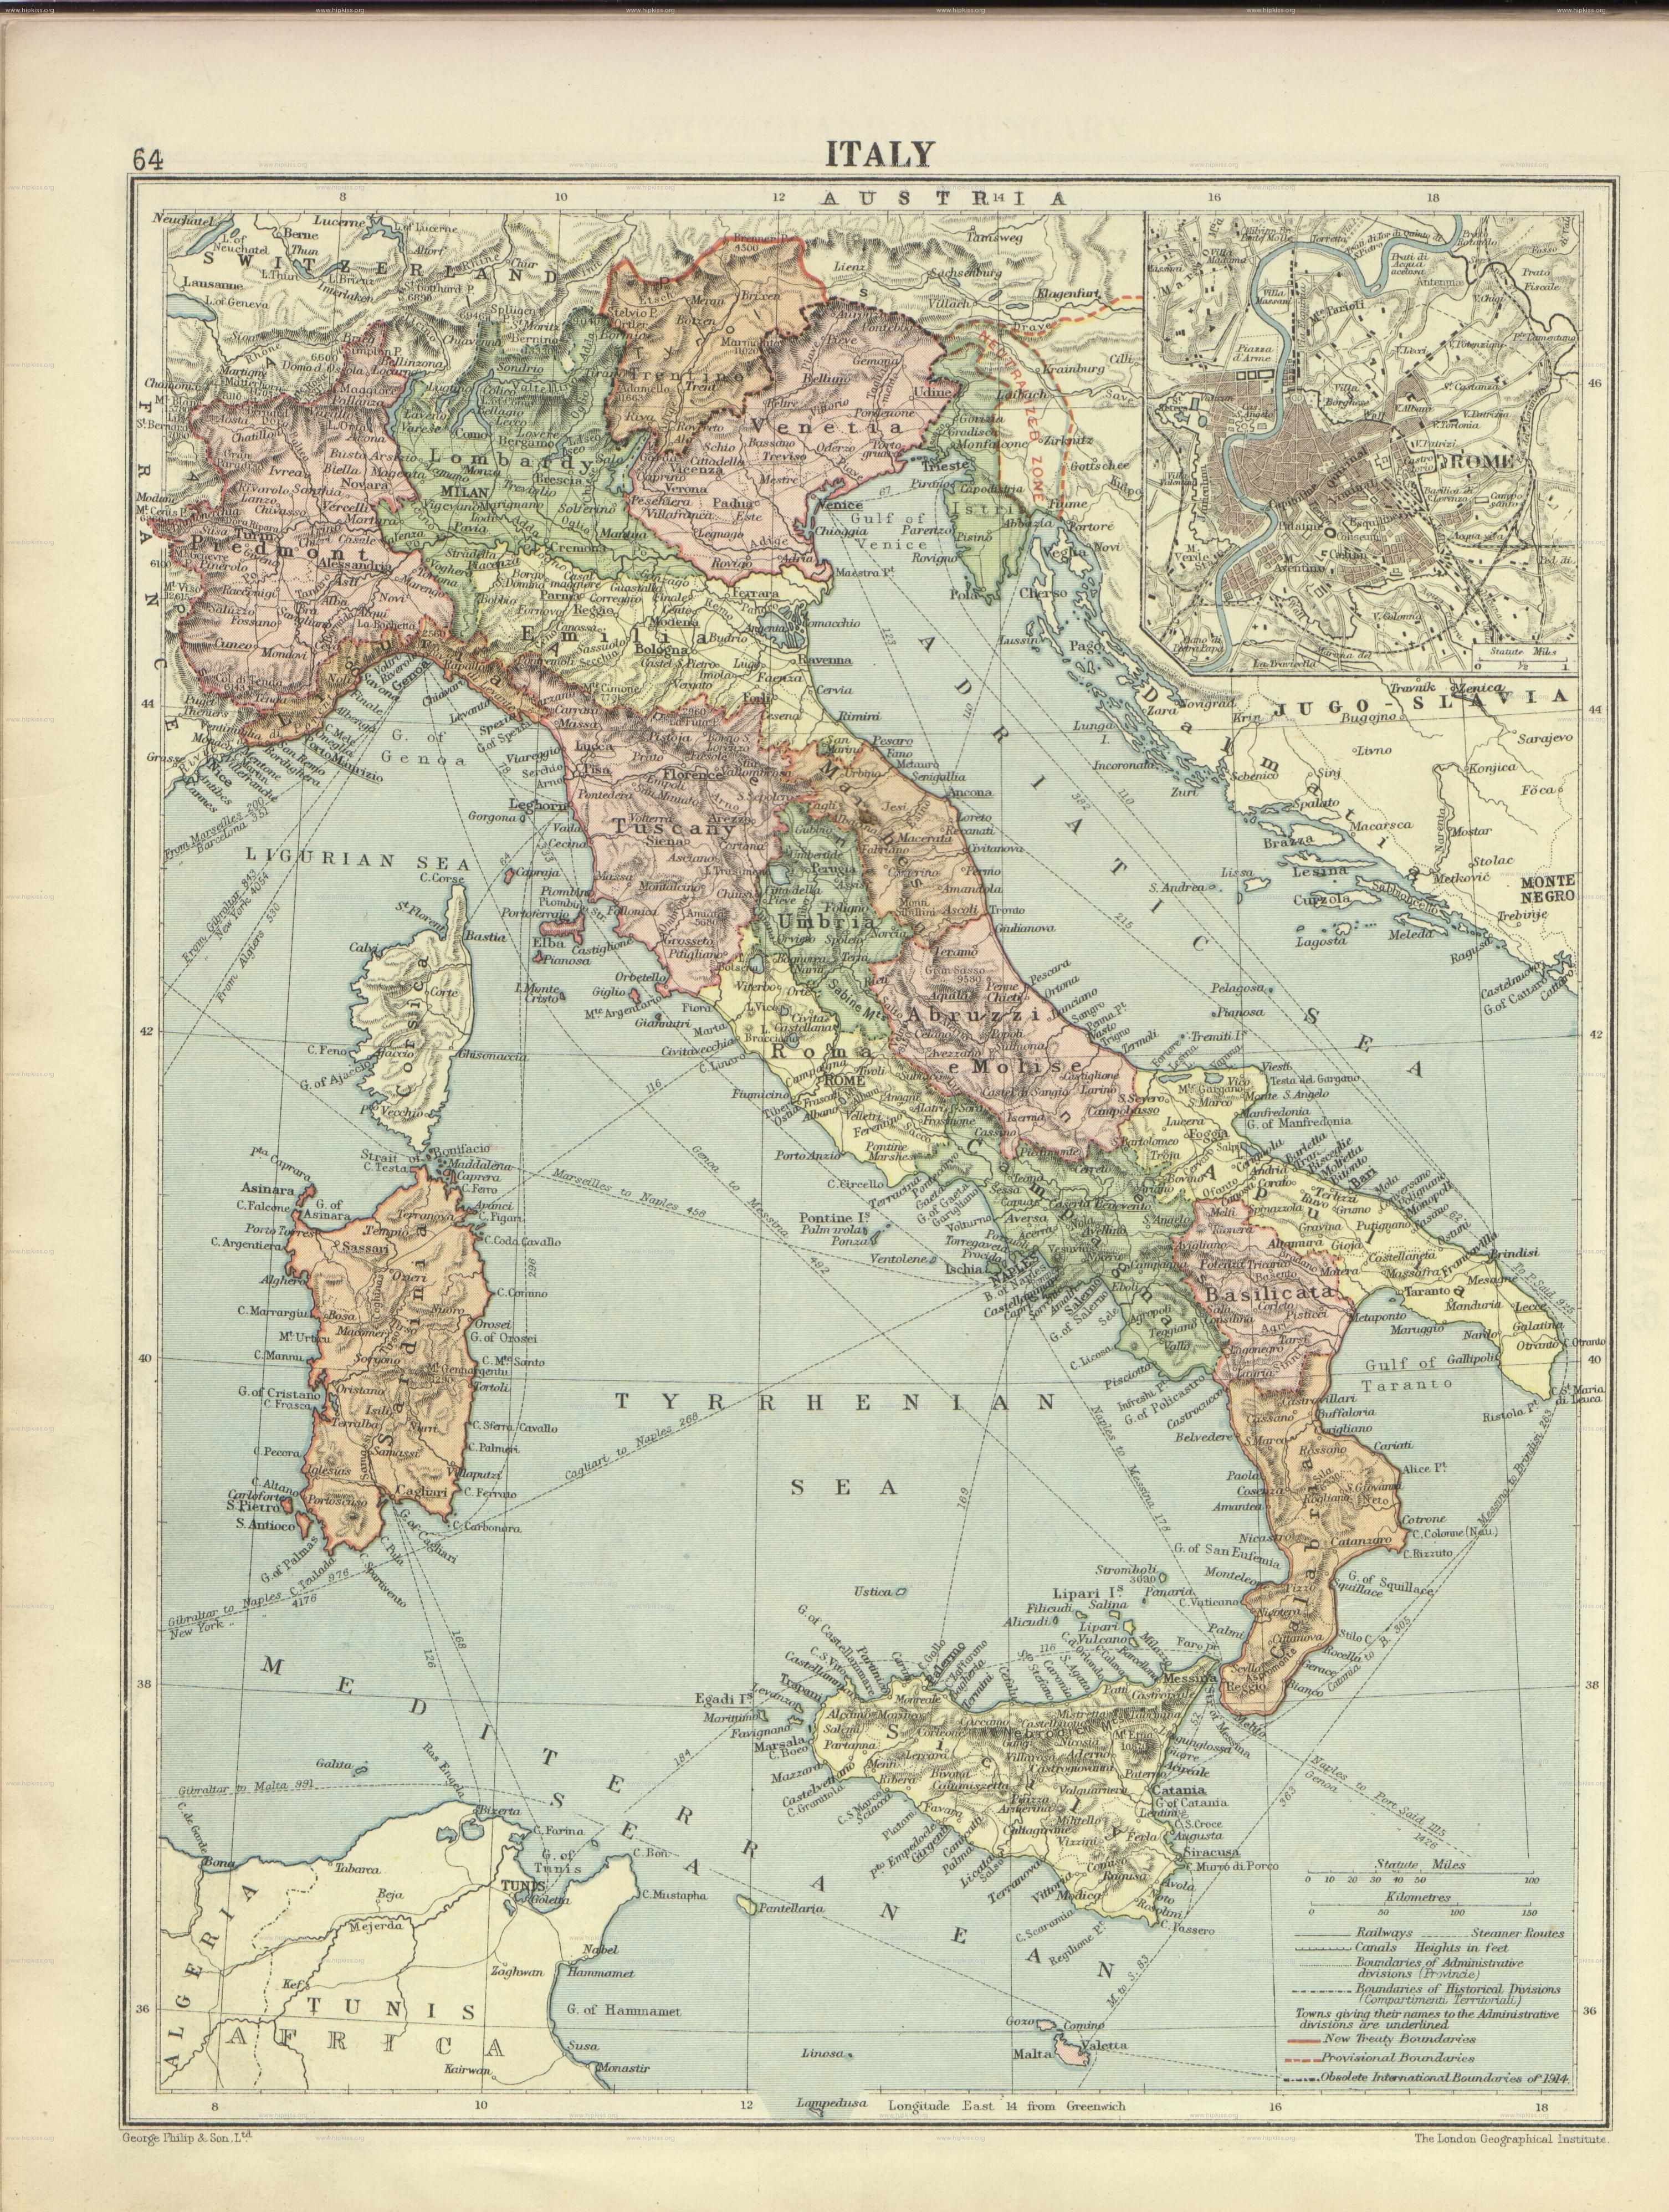 Historic maps of italy italy london geographical institute the historic maps of italy italy london geographical institute the peoples atlas 1920 gen ref env mgmt and nav visualization gumiabroncs Choice Image